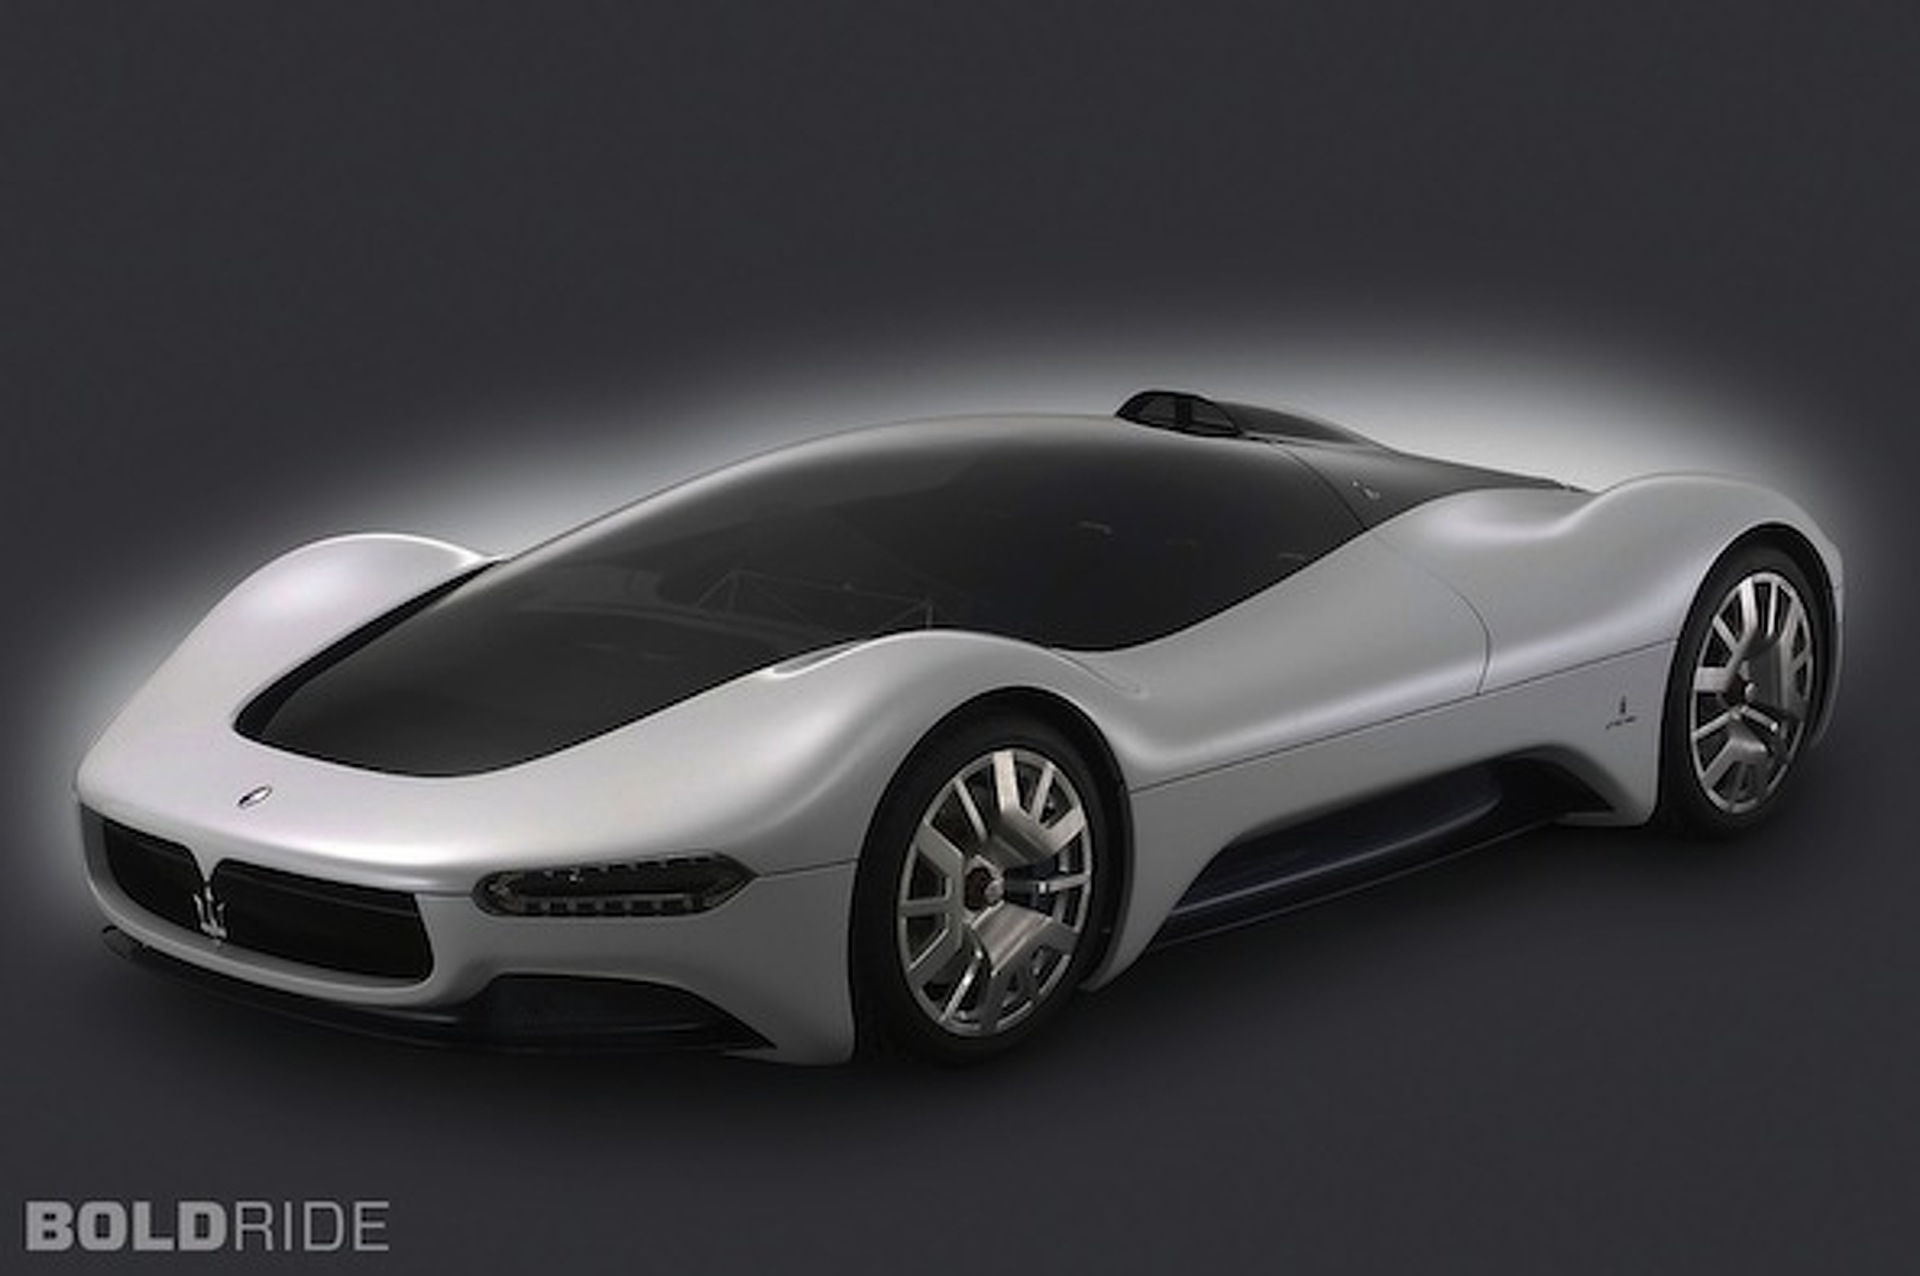 Maserati Birdcage Concept: A Tribute to Italian Ingenuity